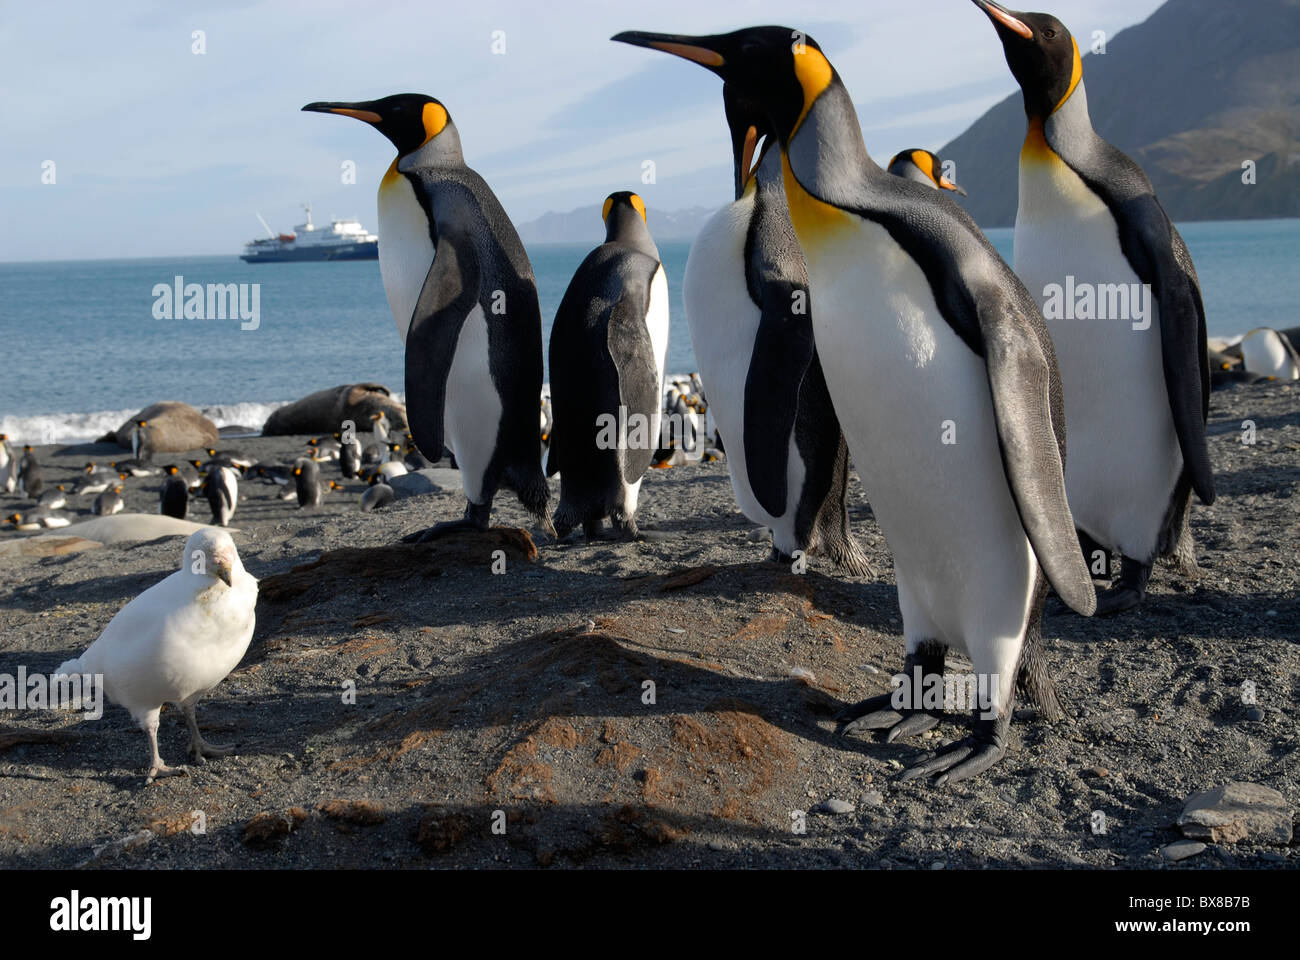 King Penguins (Aptenodytes patagonica) and a snowy sheathbill (Chionis alba), Gold Harbour, South Georgia Stock Photo